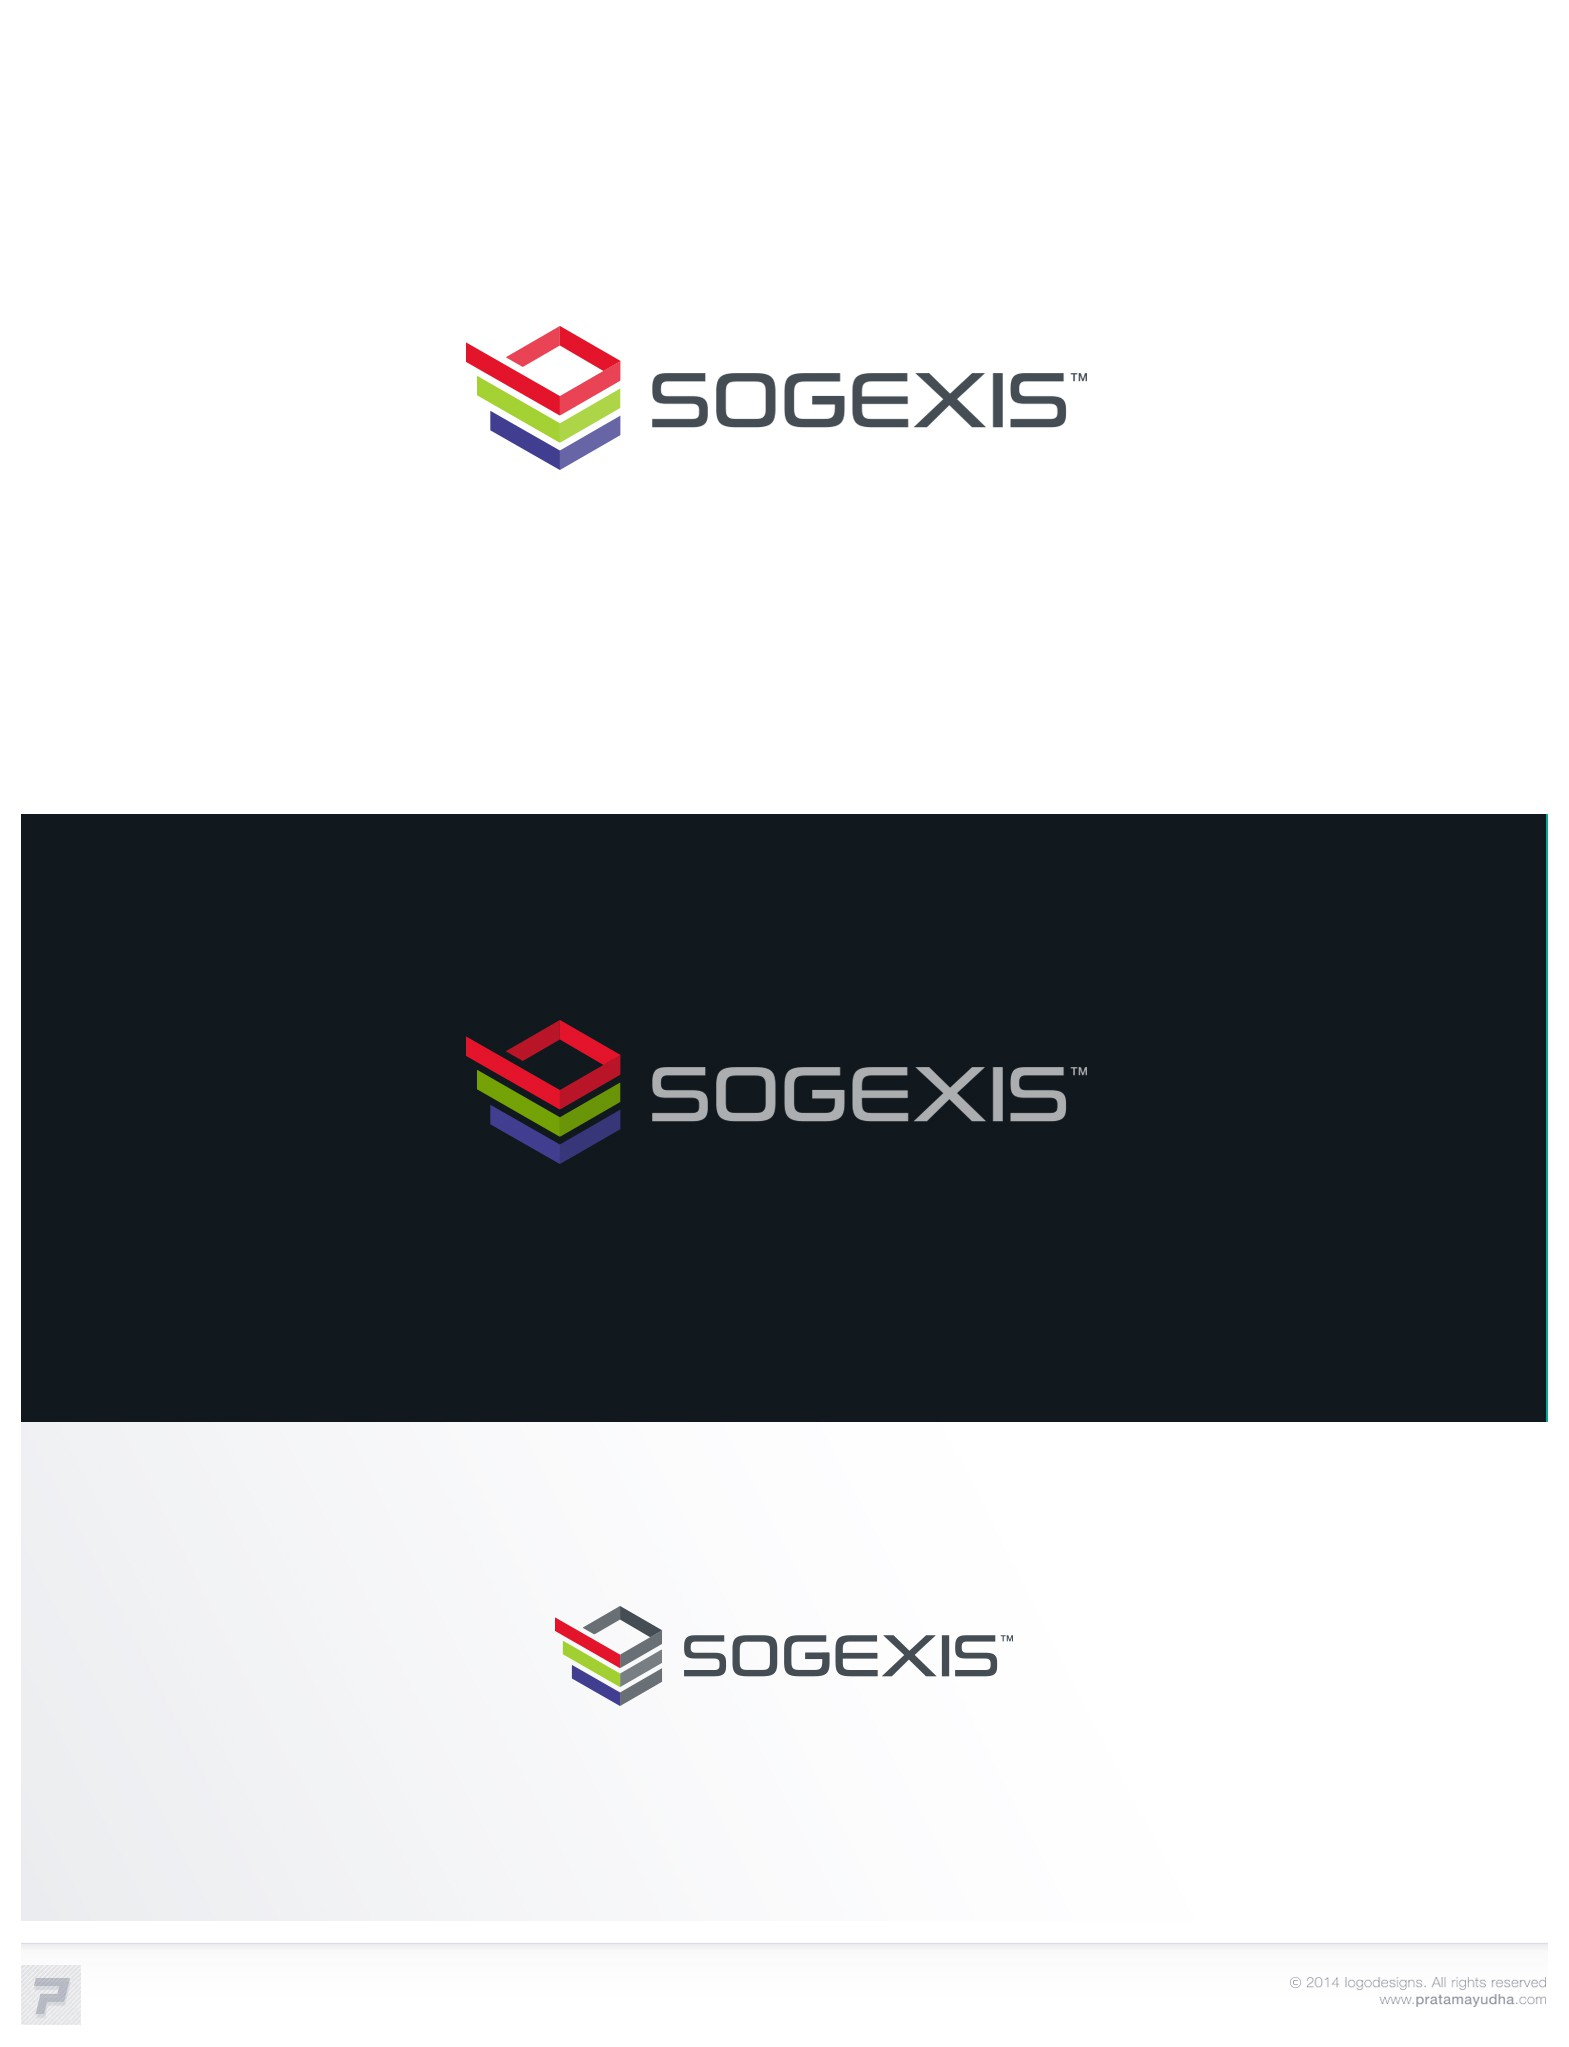 Evolution of a logo for a company specializing in IT